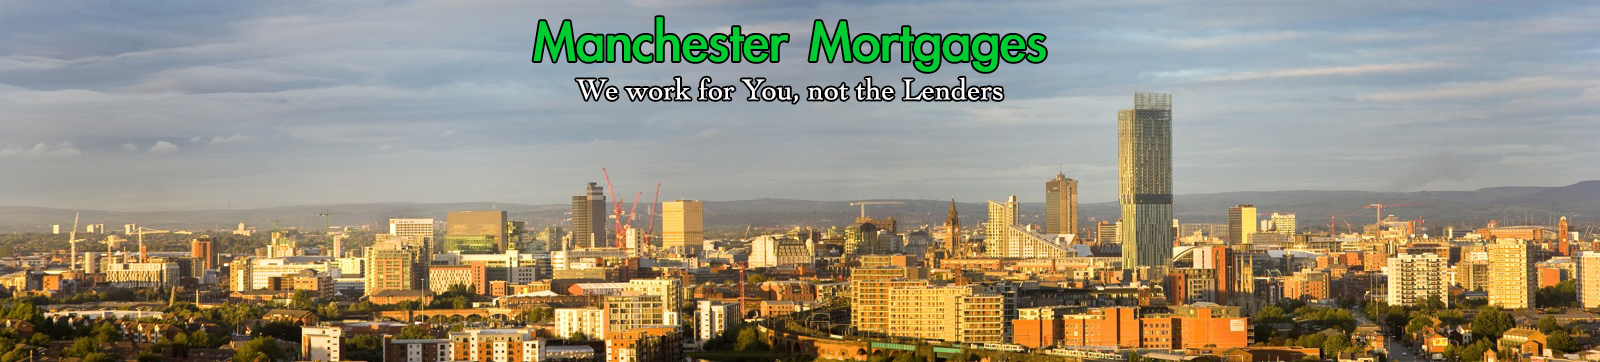 Manchester Mortgages Skyline